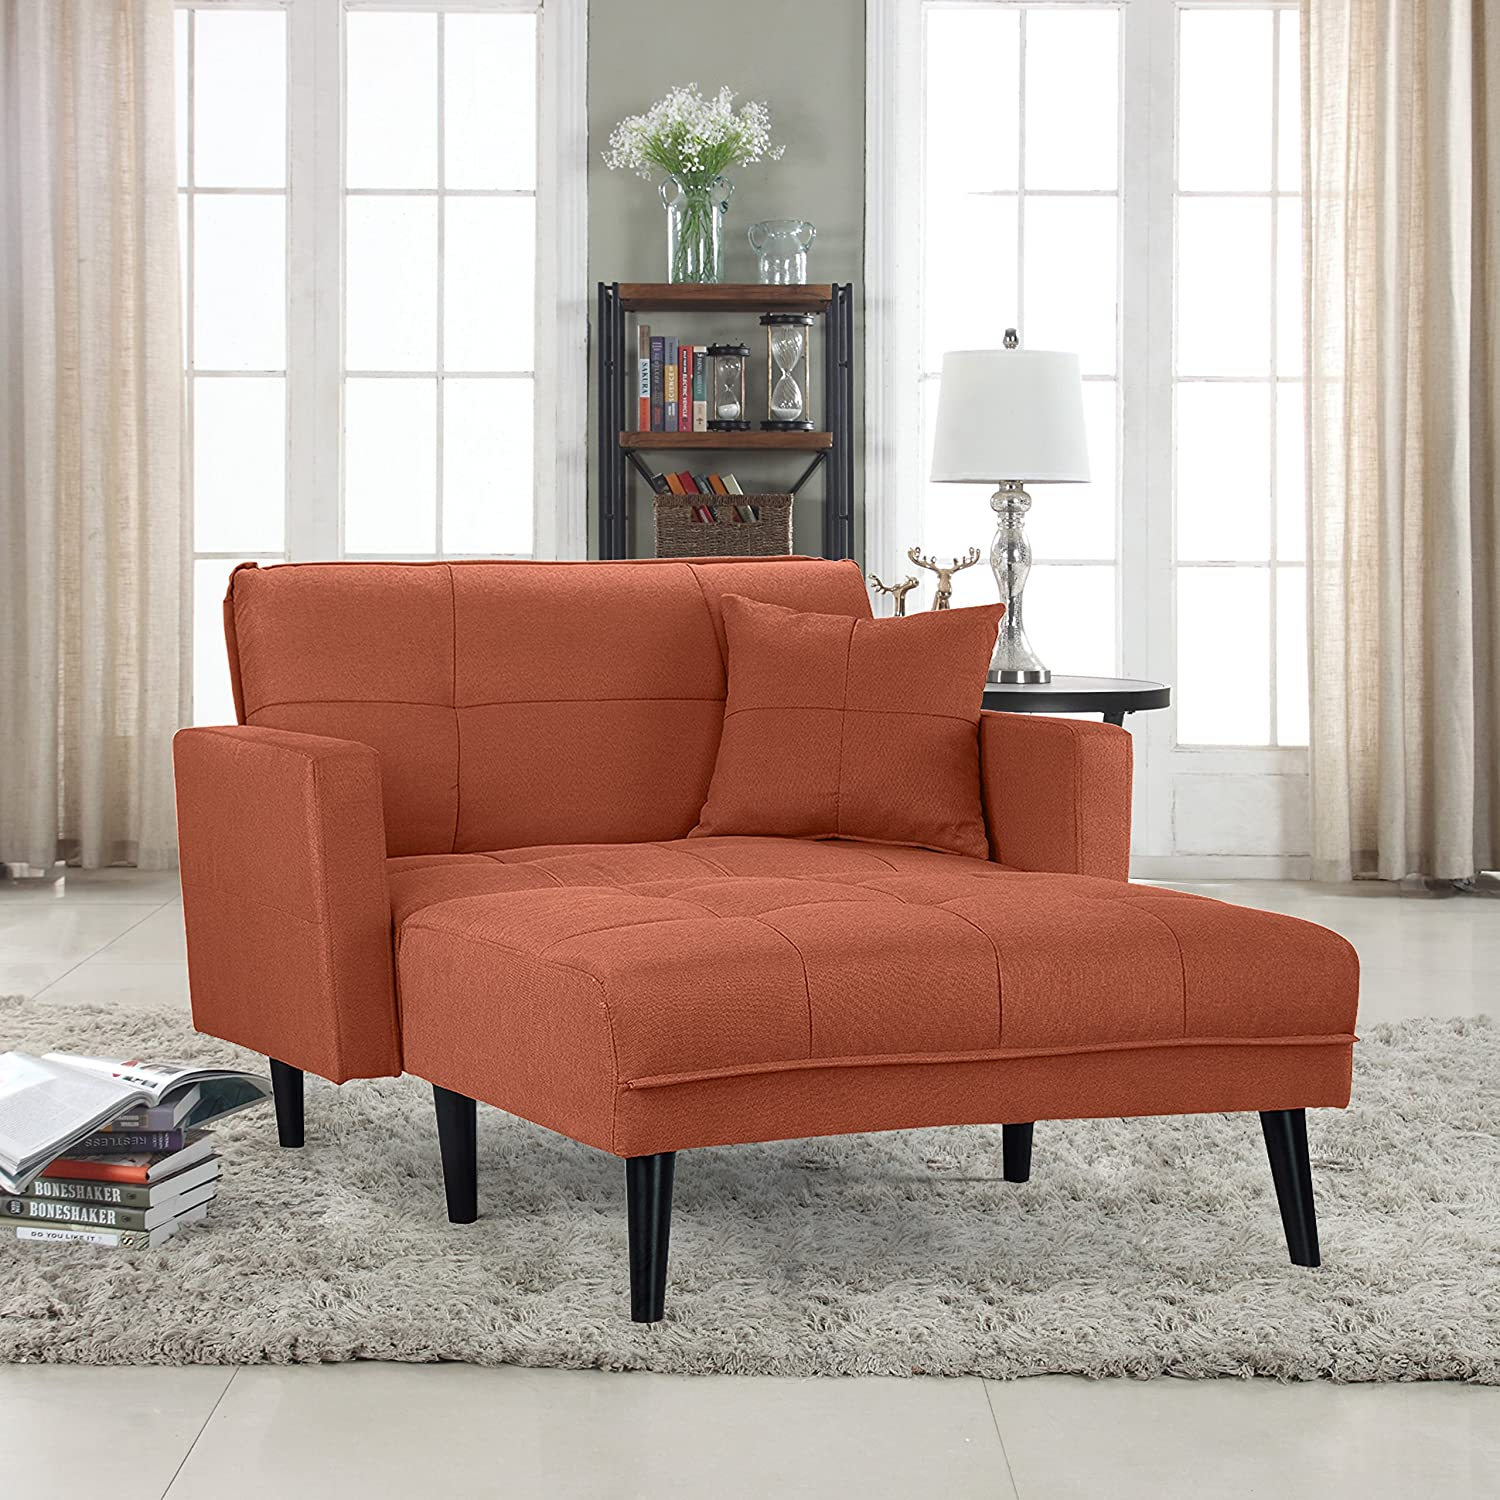 chaise lounge for living room. Modern Linen Fabric Recliner Sleeper Chaise Lounge  Futon Single Seater Orange Amazon com